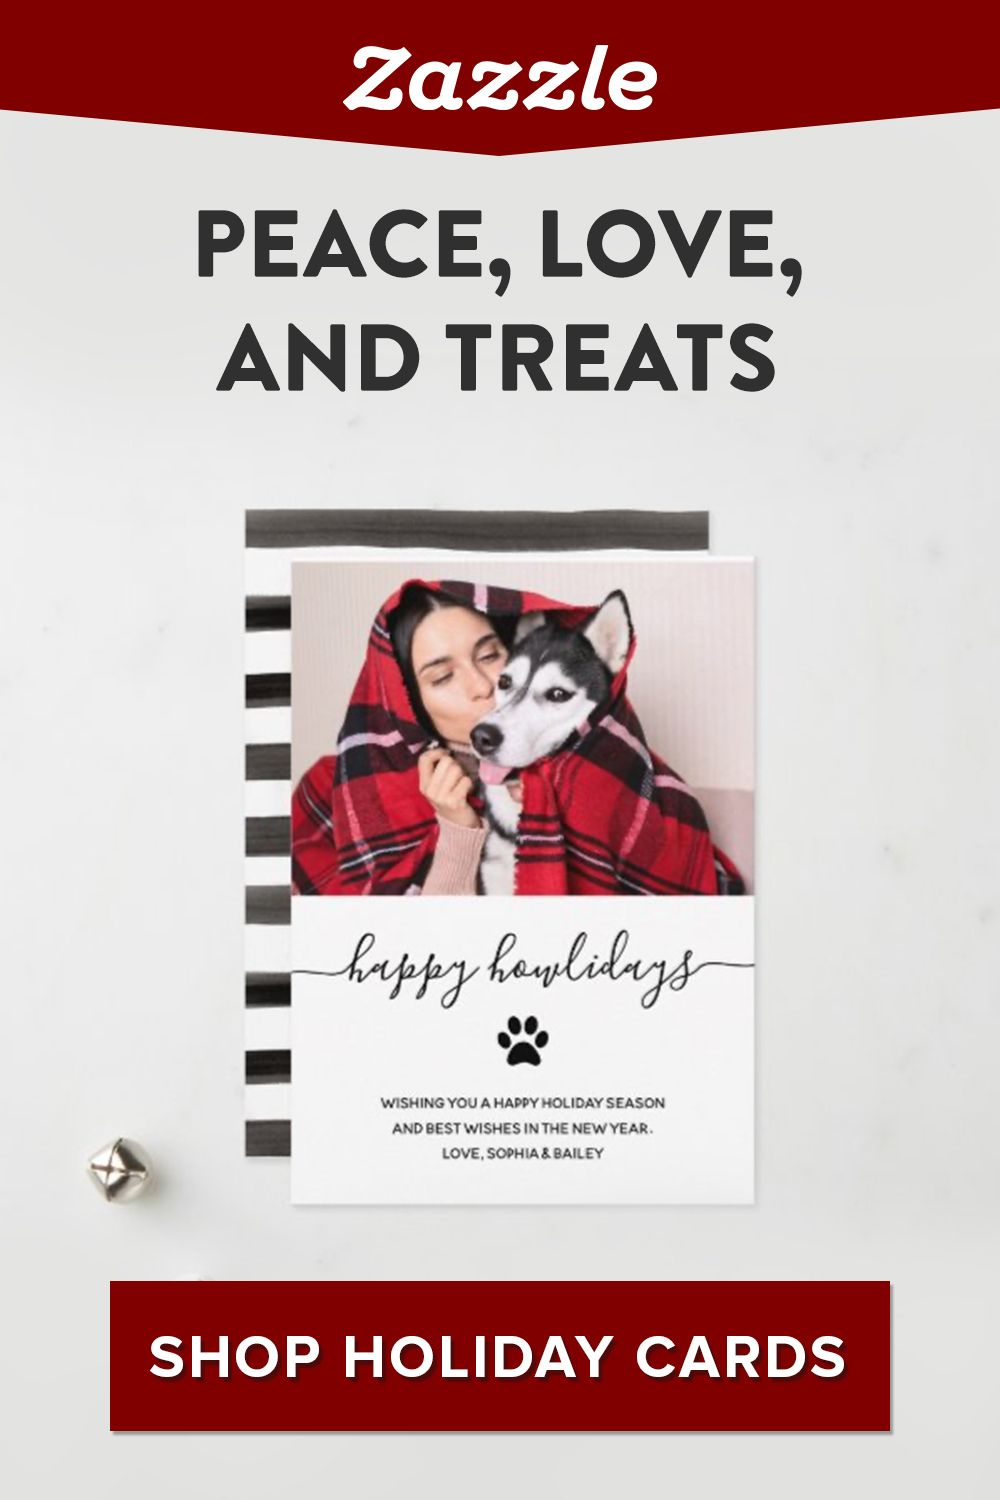 Feature your furry friend on your holiday card this year. Shop Zazzle for thousands of designs - on sale now! Browse gifts for pets including custom pet bowls, pet tags, leashes, and more.